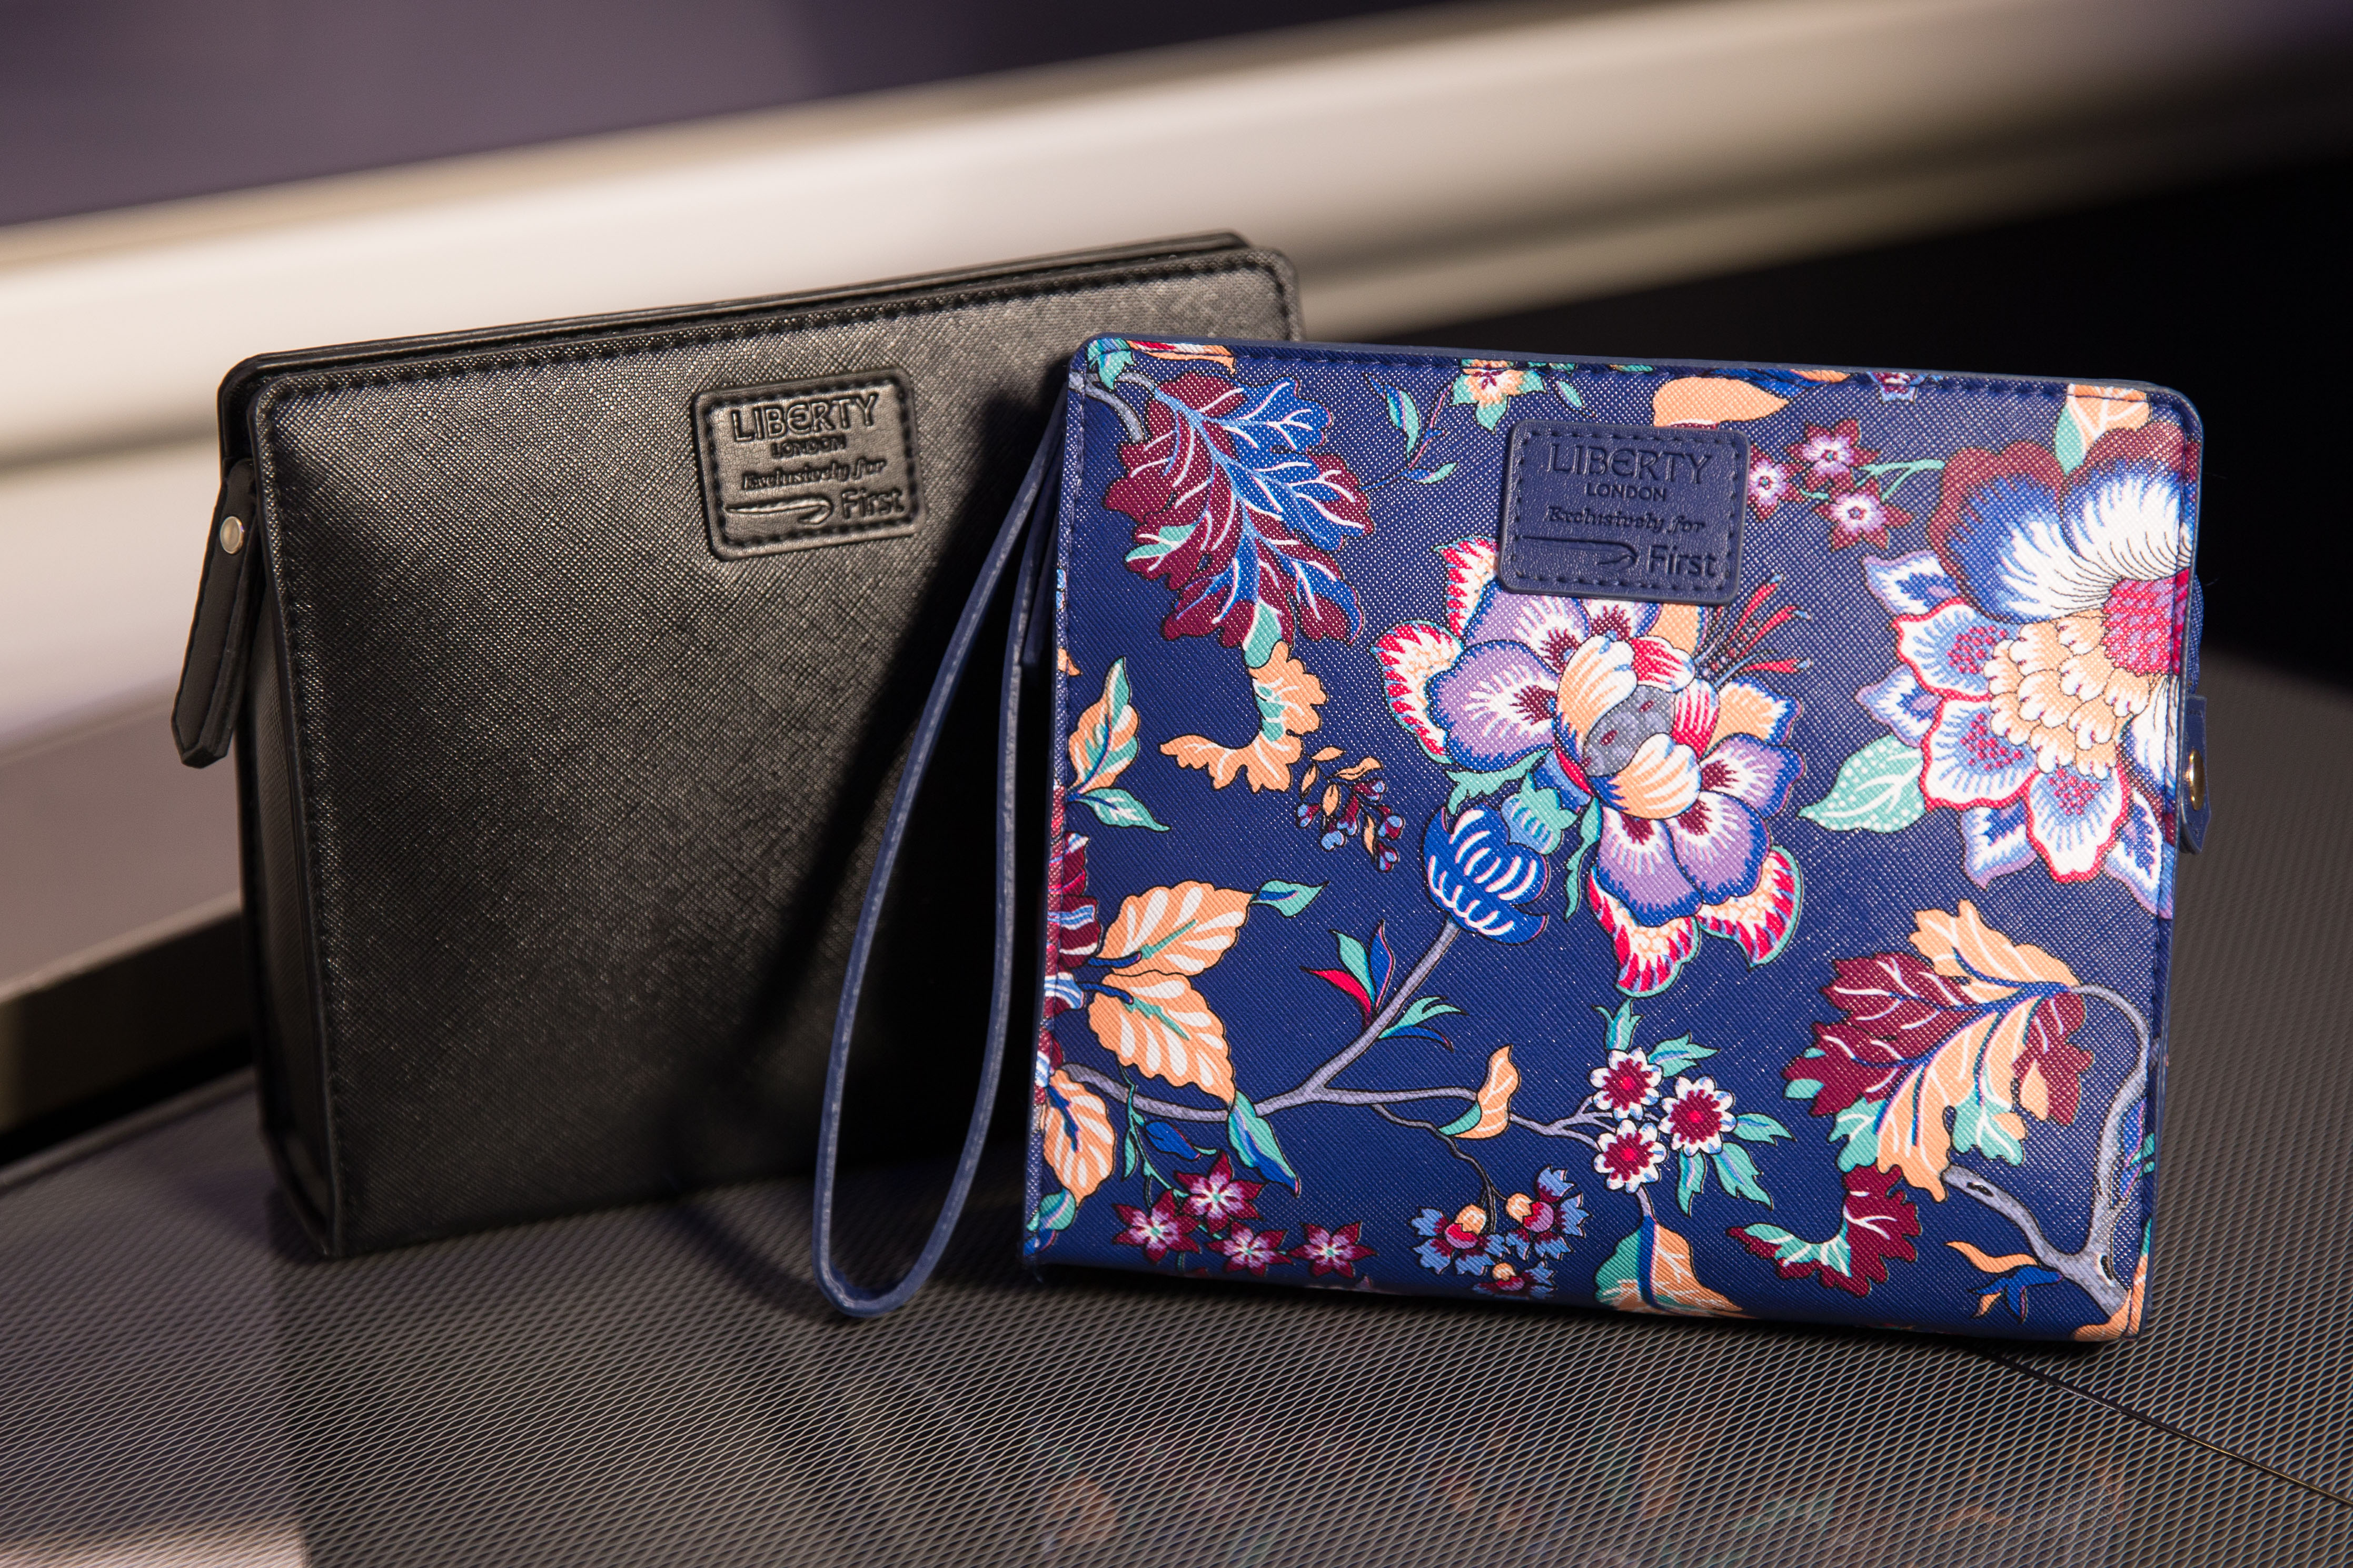 Transportation Collectables Aromatherapy Associates Collectables Delicious British Airways First Class Amenity Kit Liberty London